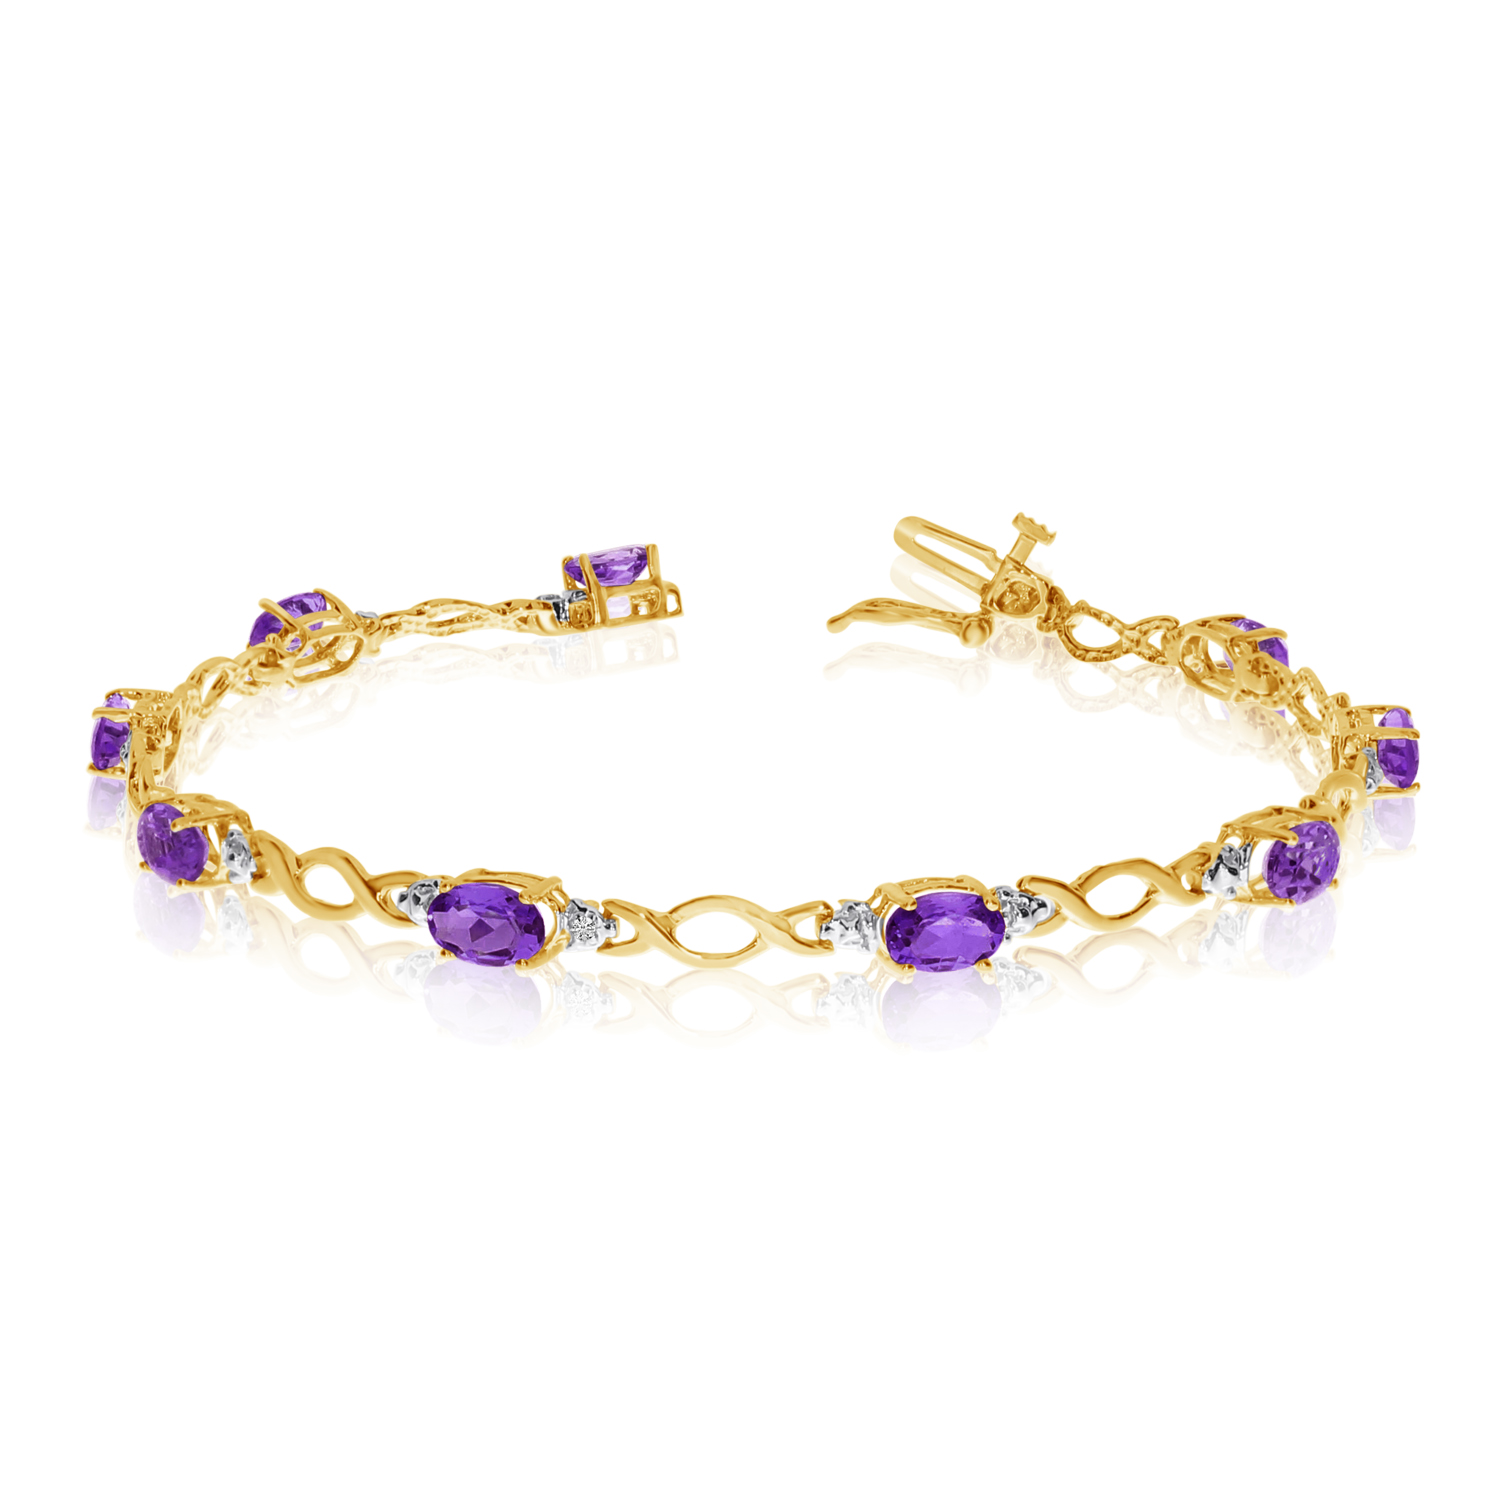 10K Yellow Gold Oval Amethyst and Diamond Bracelet by LCD